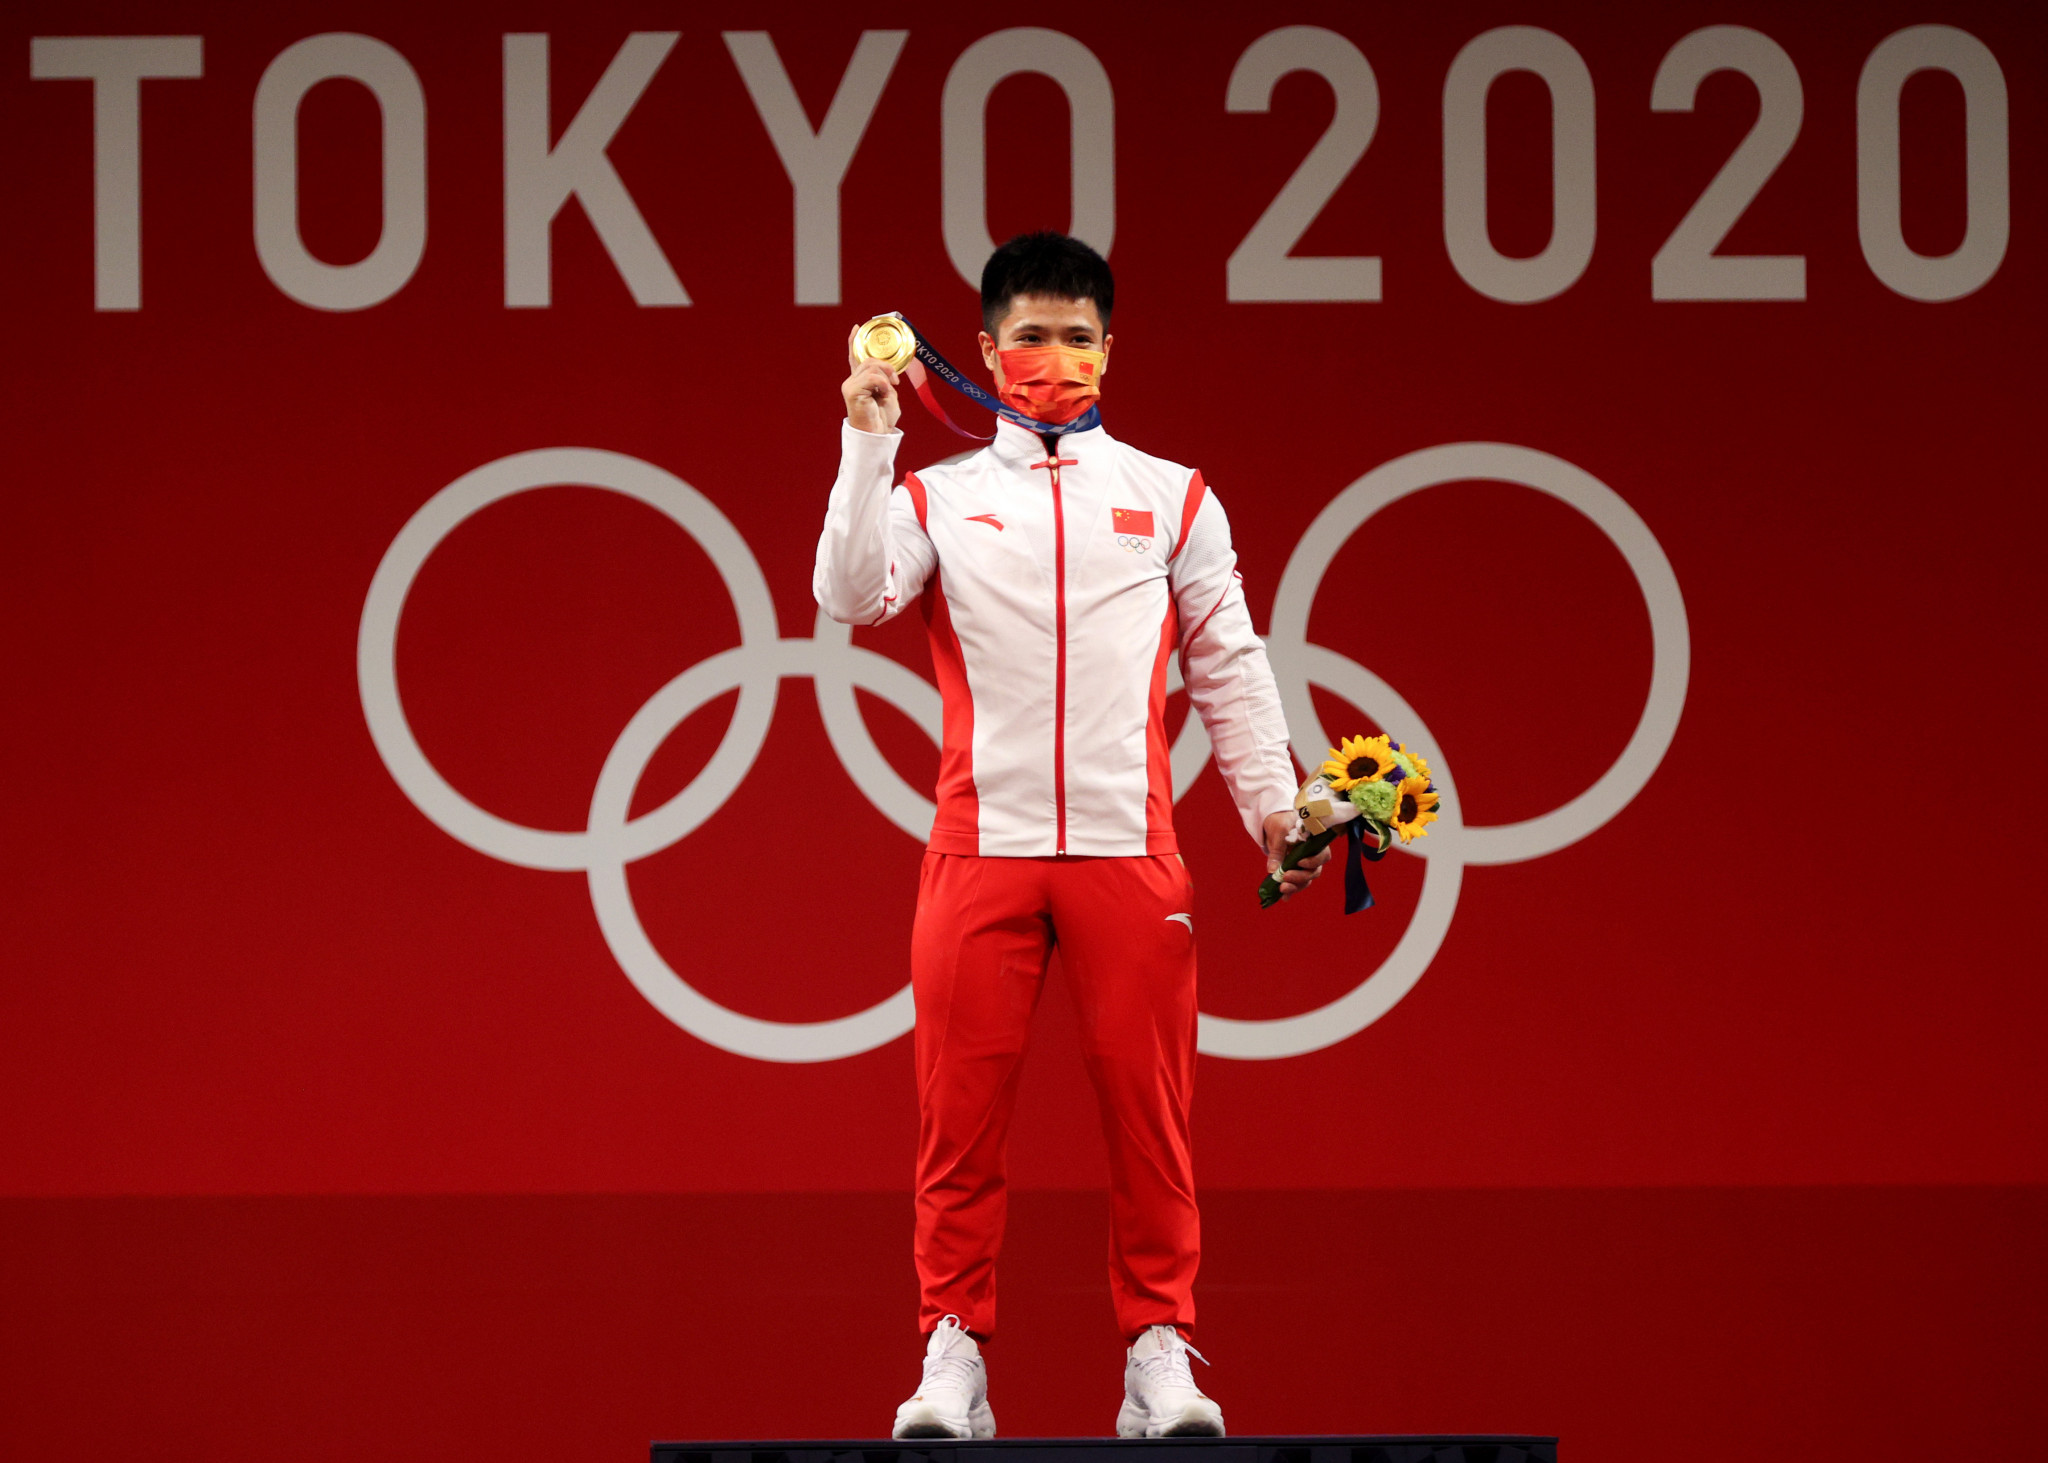 Second weightlifting gold for China - and heartbreak for Saudi Arabian - at Tokyo 2020